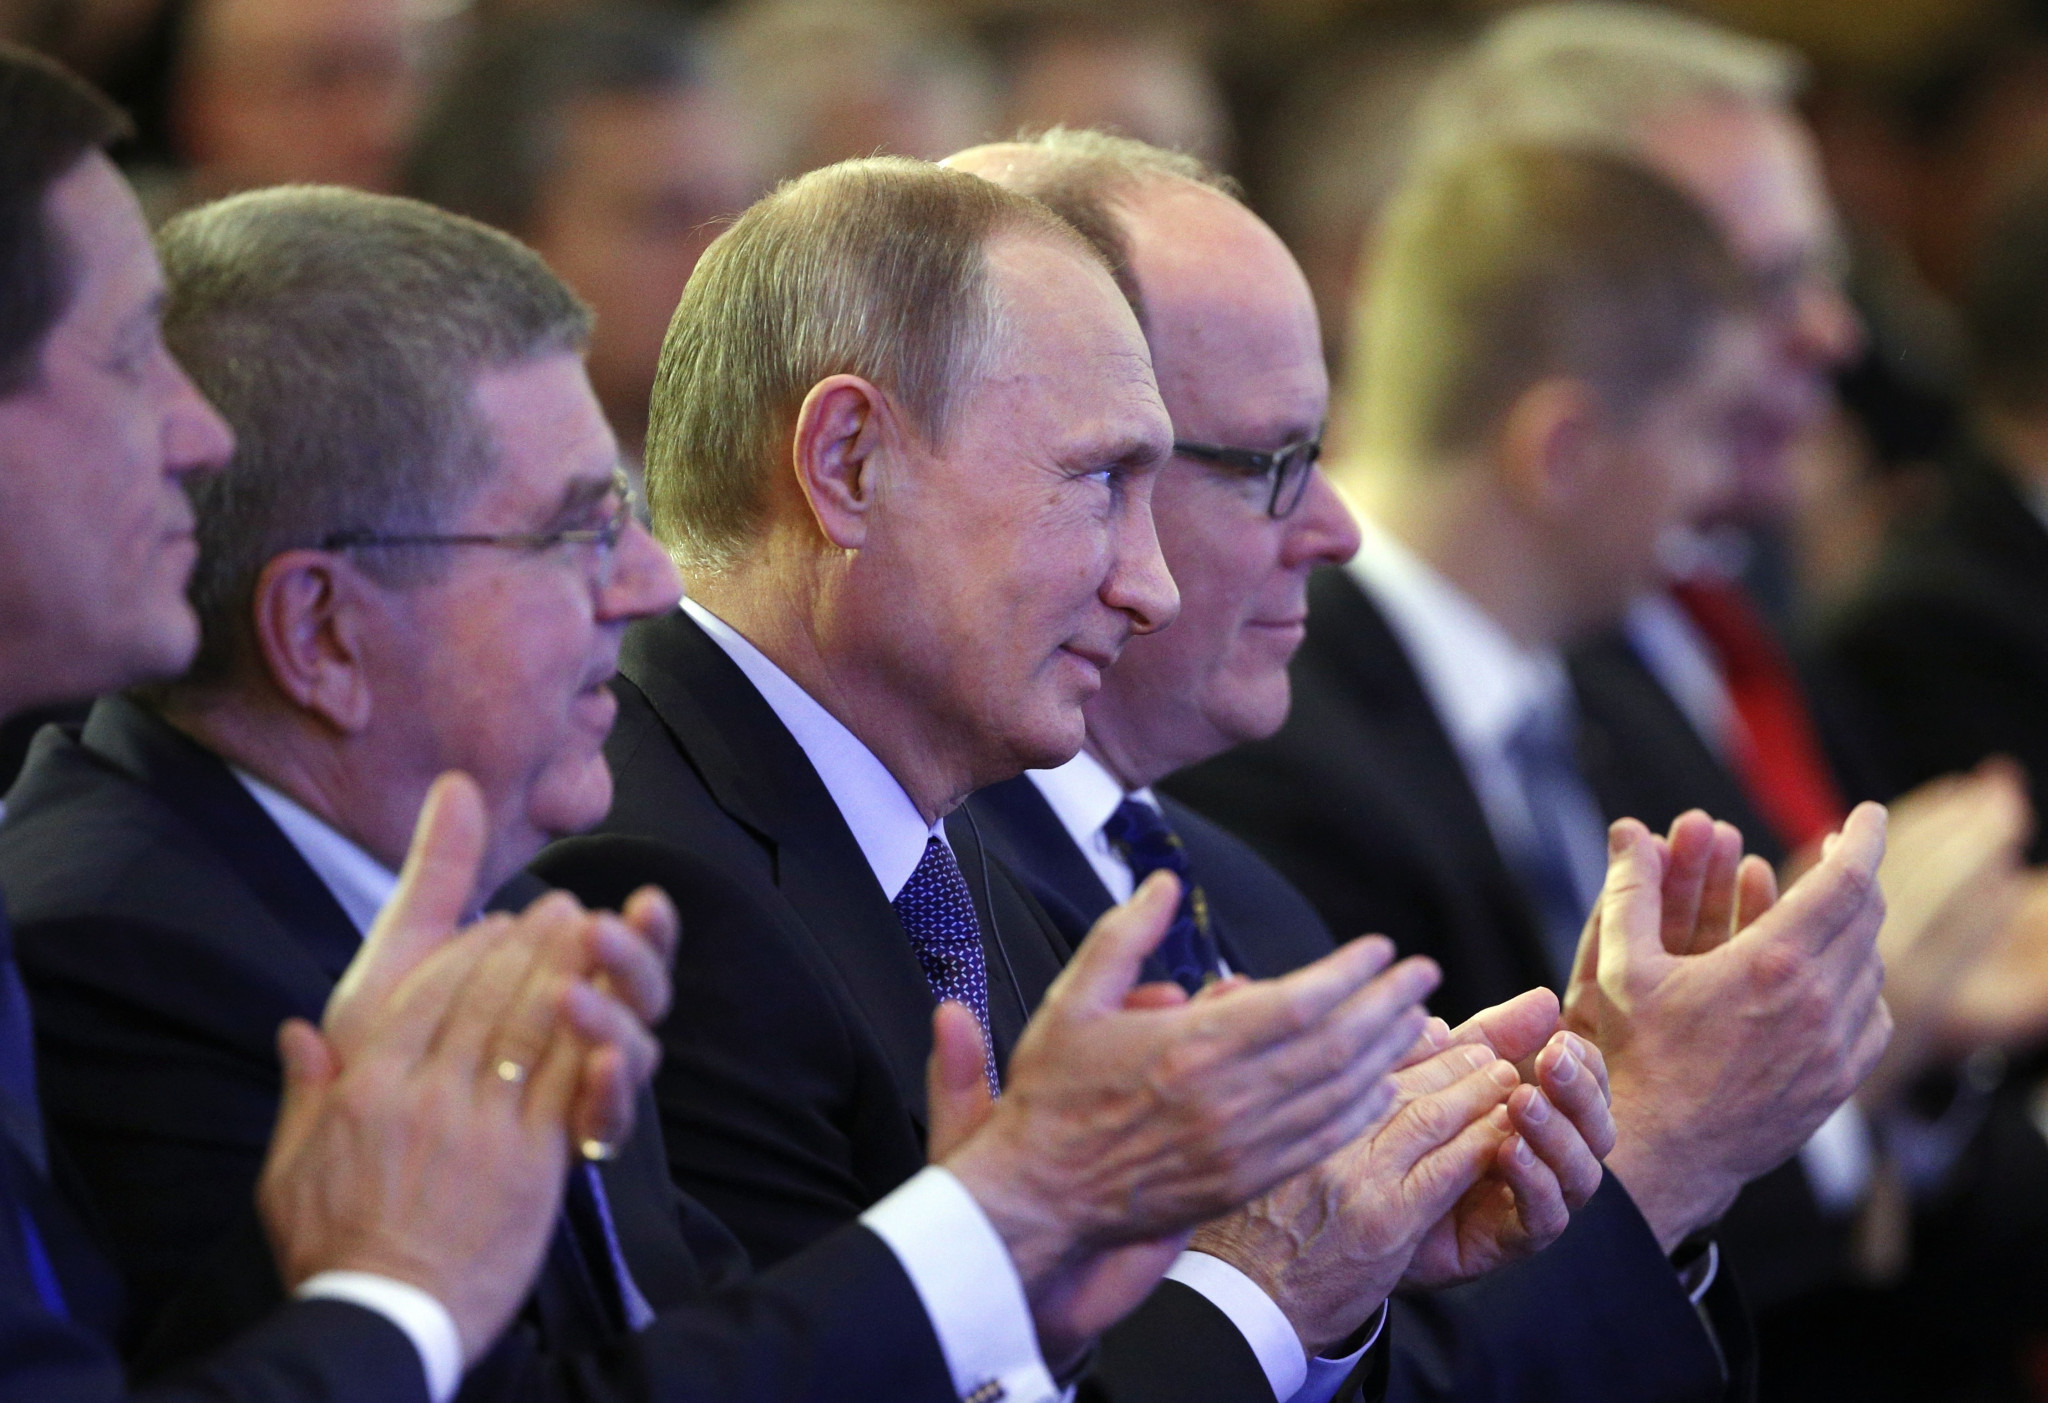 Russian President Vladimir Putin, pictured alongside Thomas Bach and IOC member Prince Albert of Monaco, has claimed the doping scandal involving his country is part of a United States-led conspiracy ©Getty Images